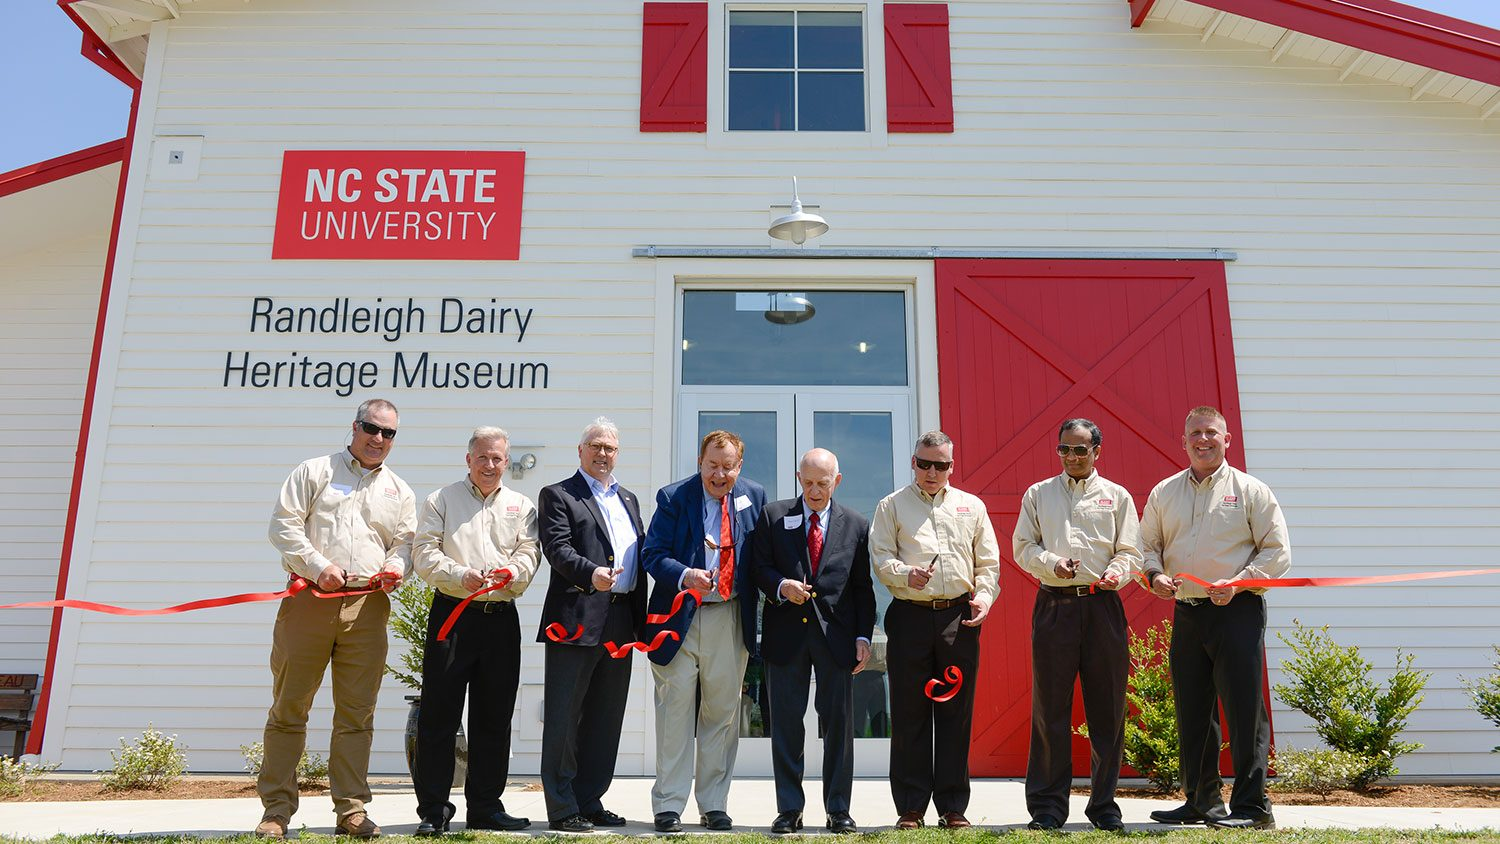 Group cutting ribbon in front of Randleigh Dairy Heritage Museum